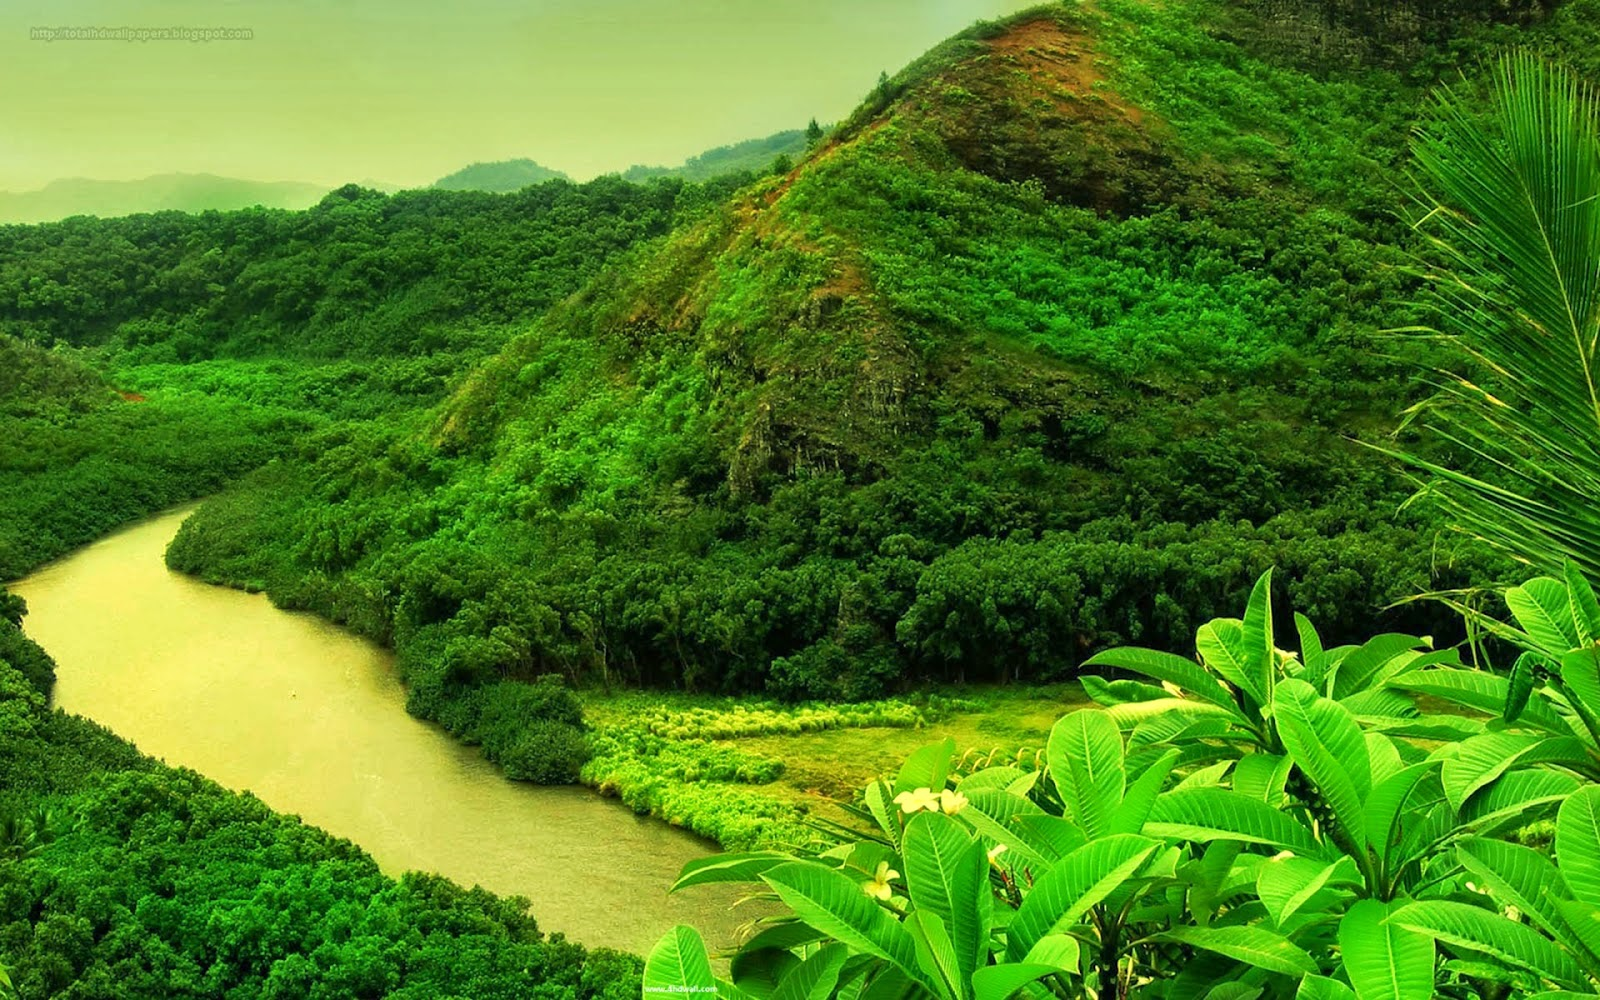 Beautiful Places Nature Green Mountain Images HD Wallpapers Free Downloads